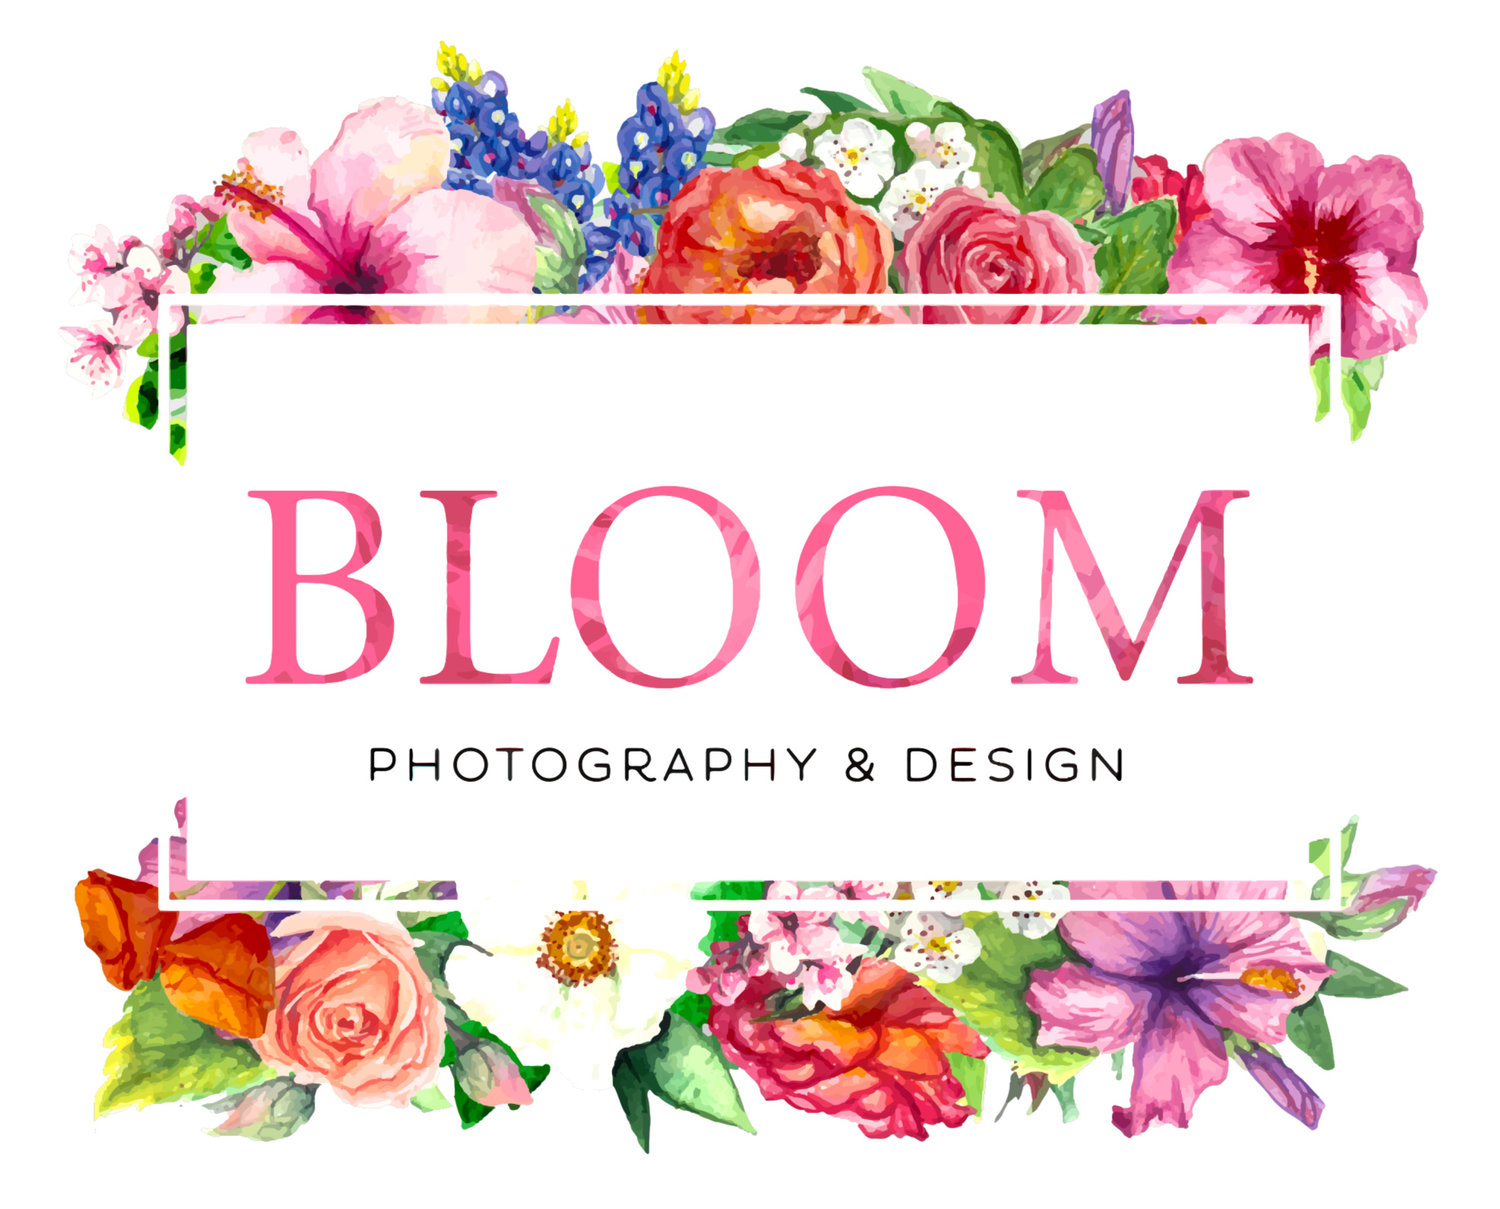 Bloom Photography & Design